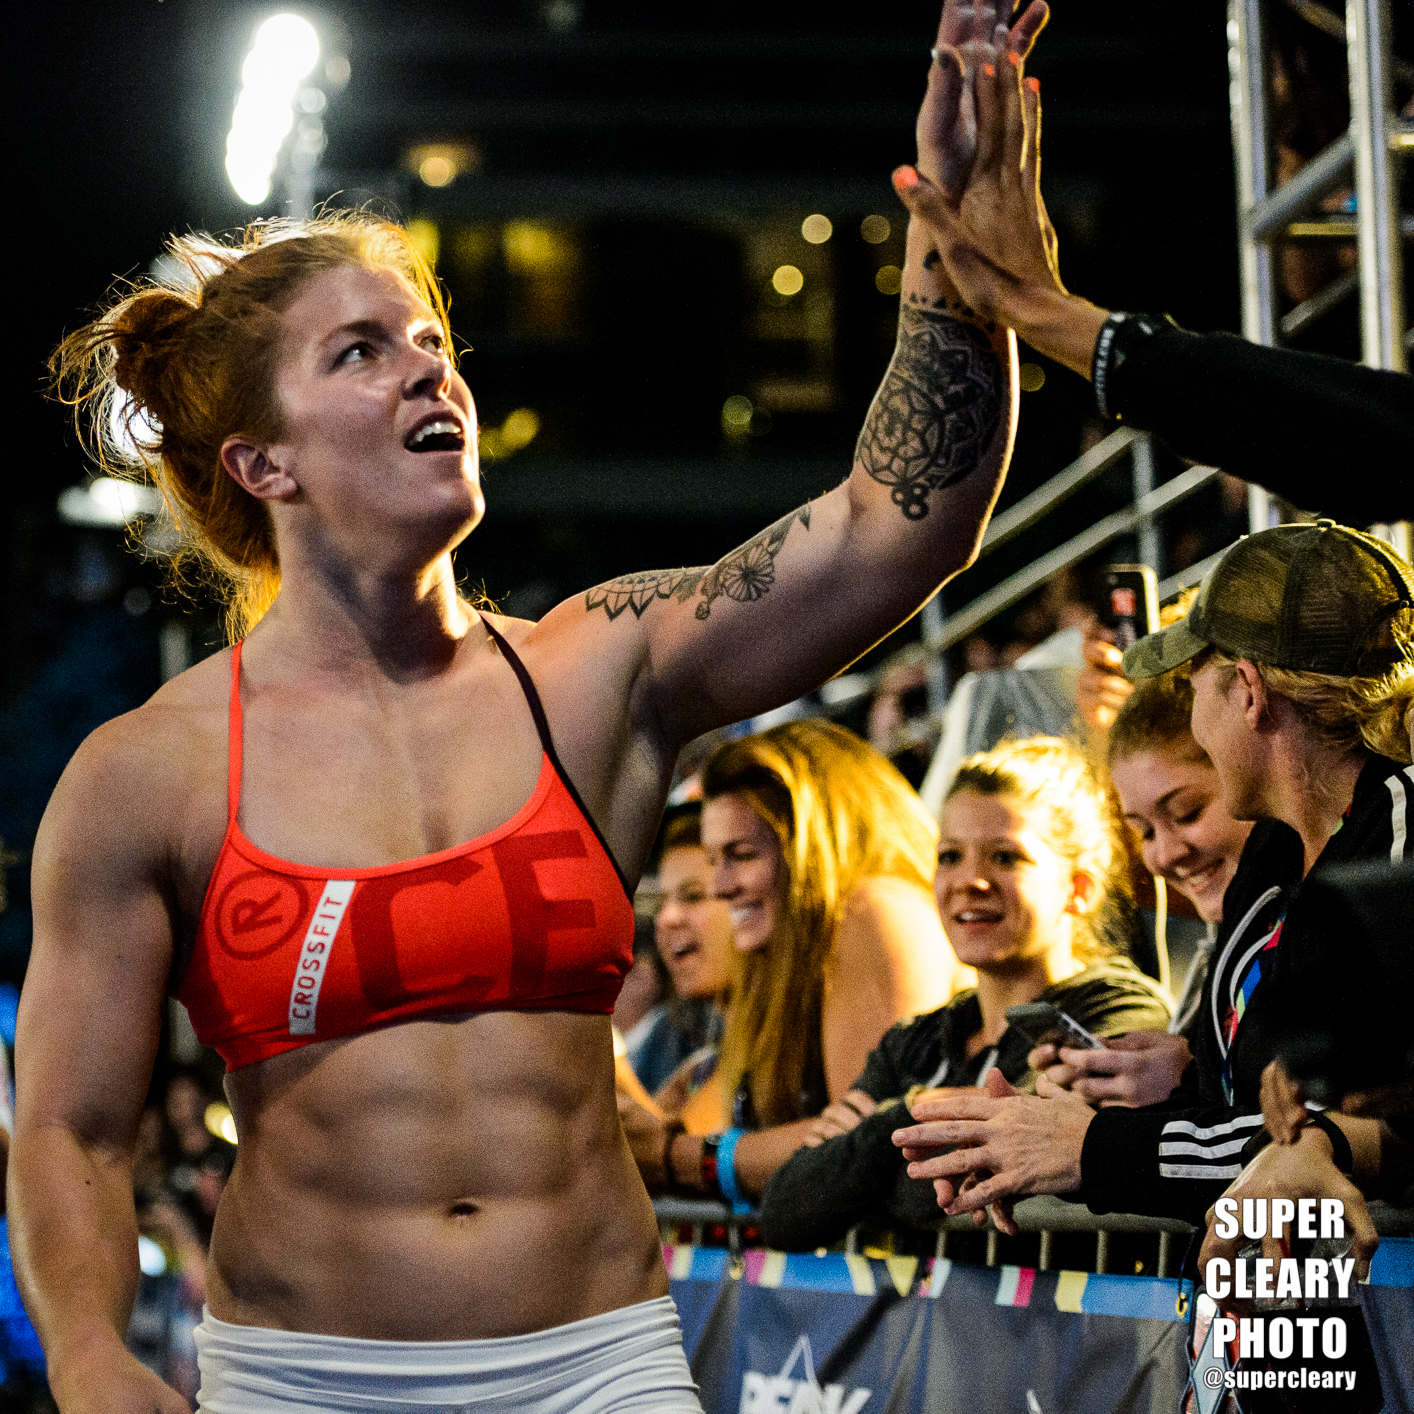 Emily Abbot - Shot for Wodapalooza